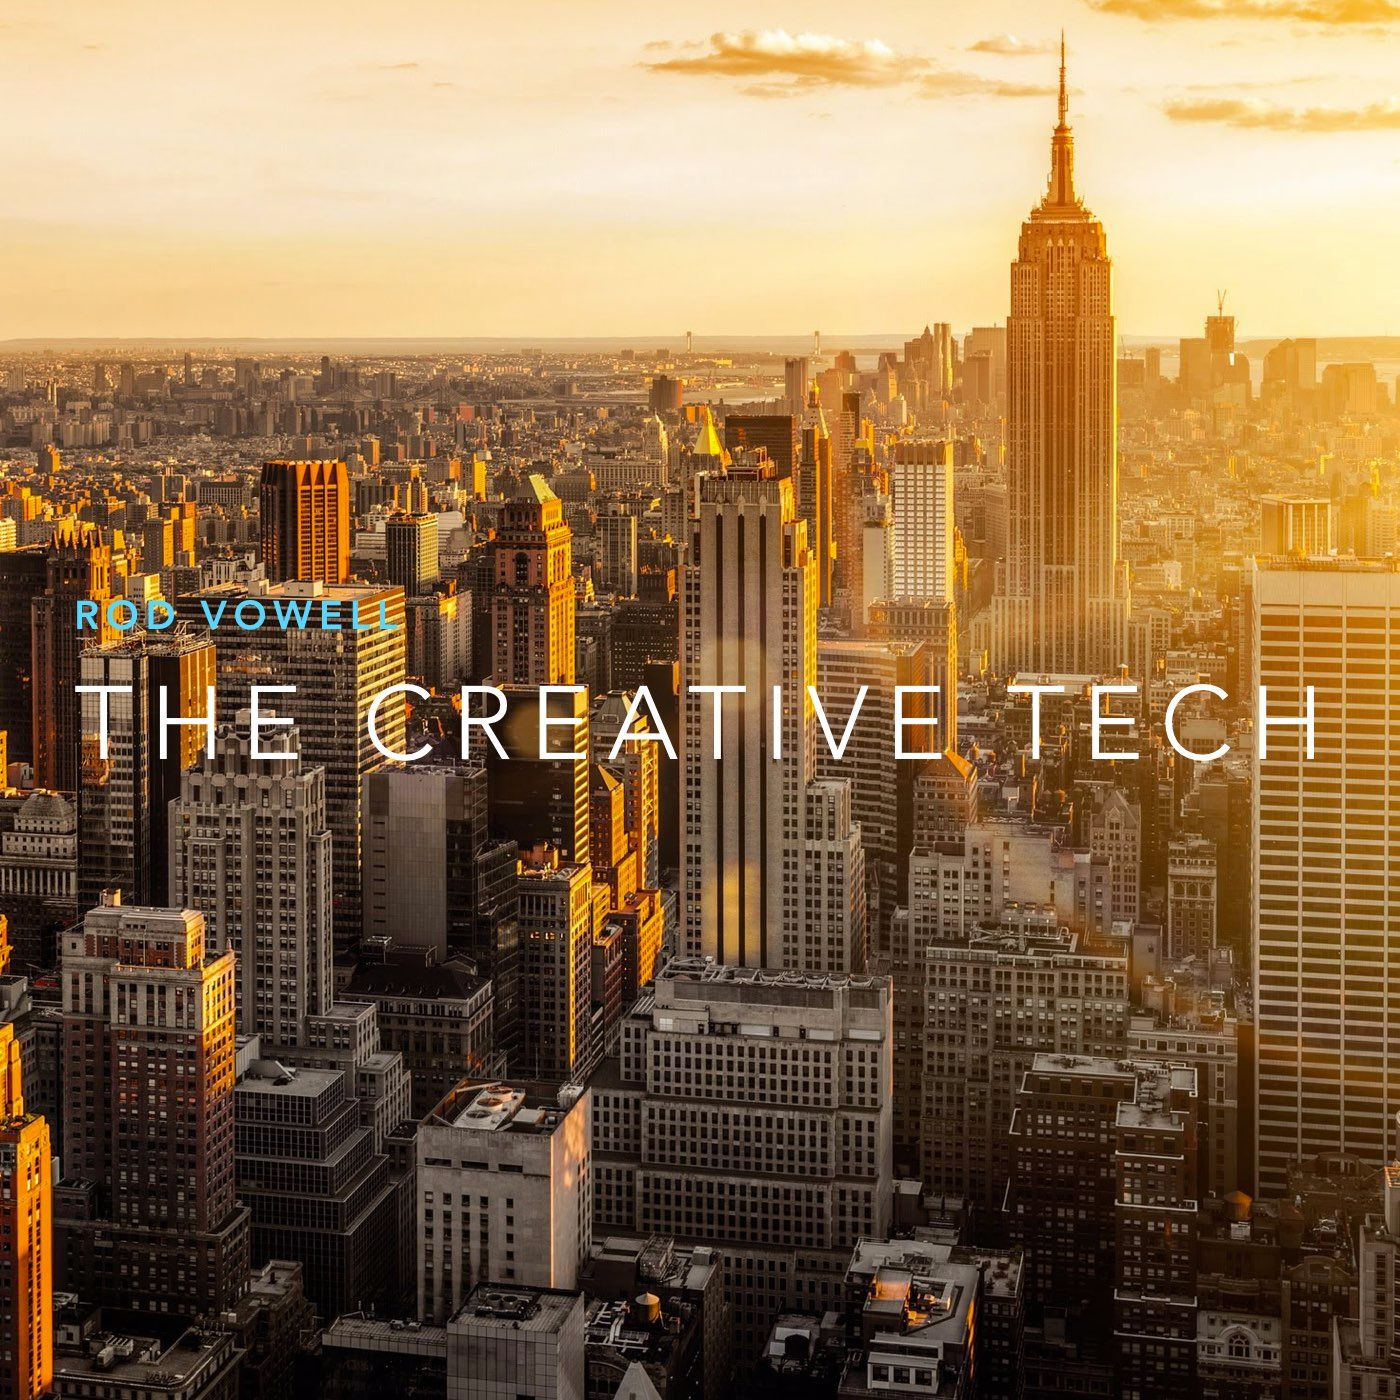 The Creative Tech: Rod Vowell